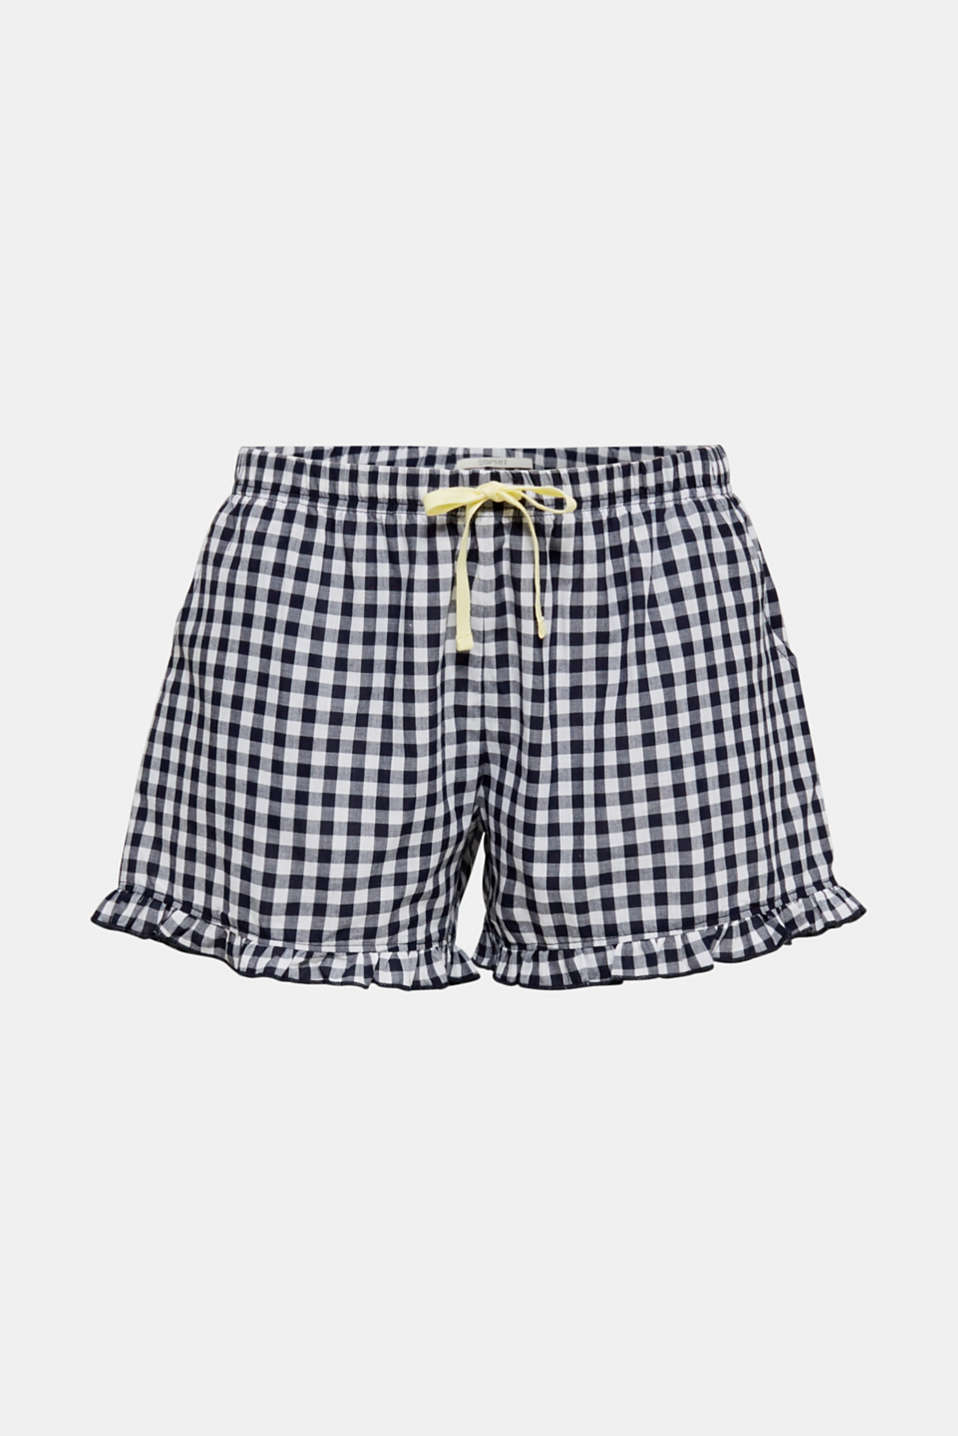 Woven shorts with frills, 100% cotton, NAVY 2, detail image number 4